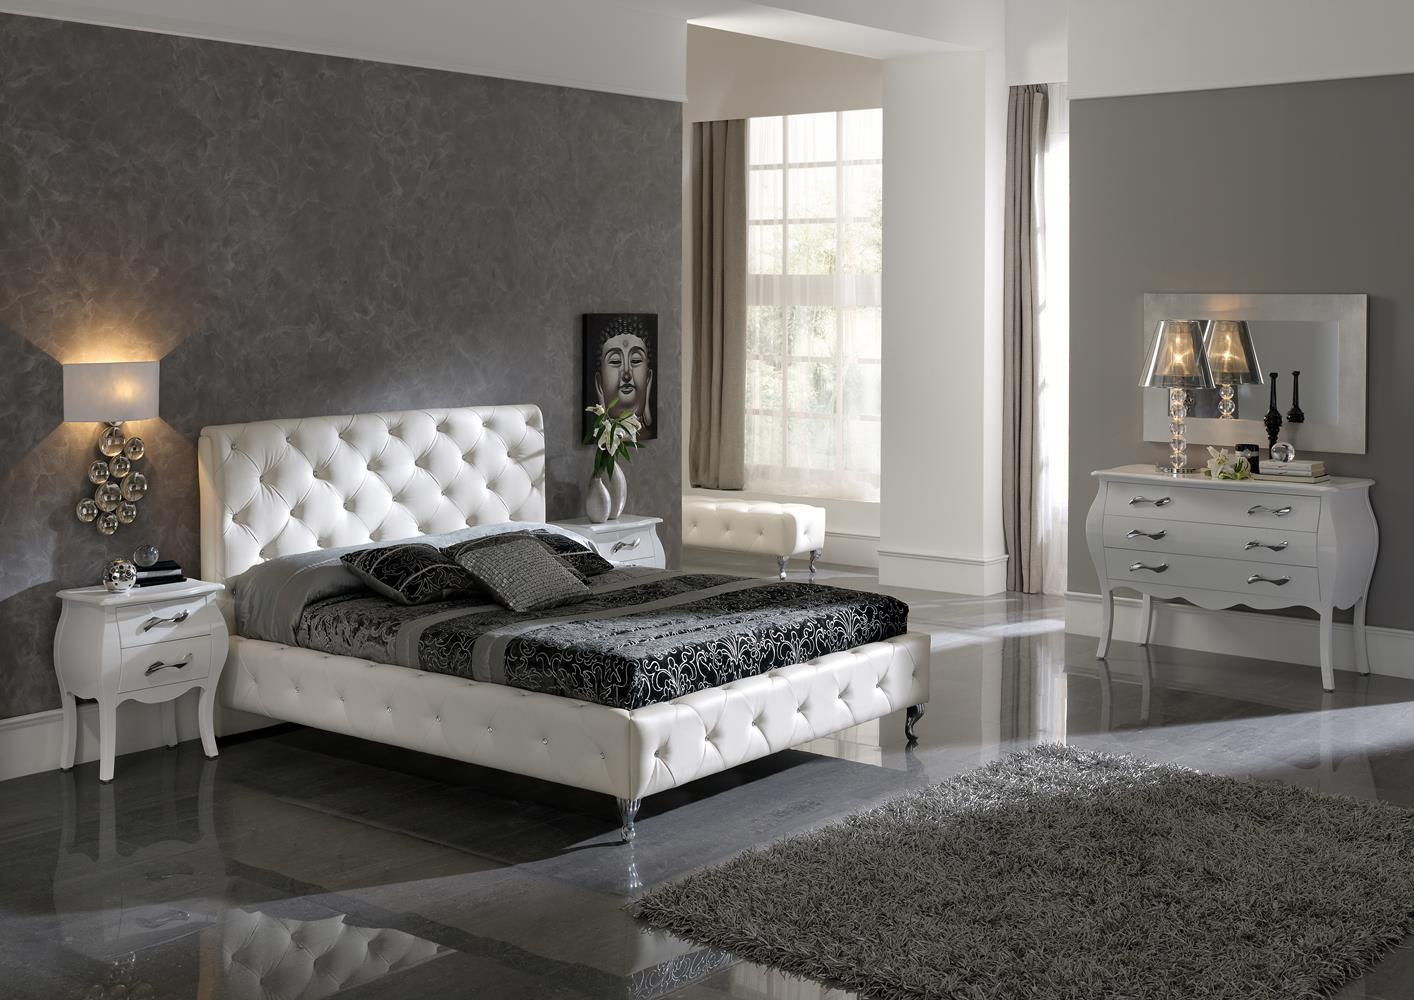 acheter votre lit capitonn contemporain en cuir blanc avec strass chez simeuble. Black Bedroom Furniture Sets. Home Design Ideas